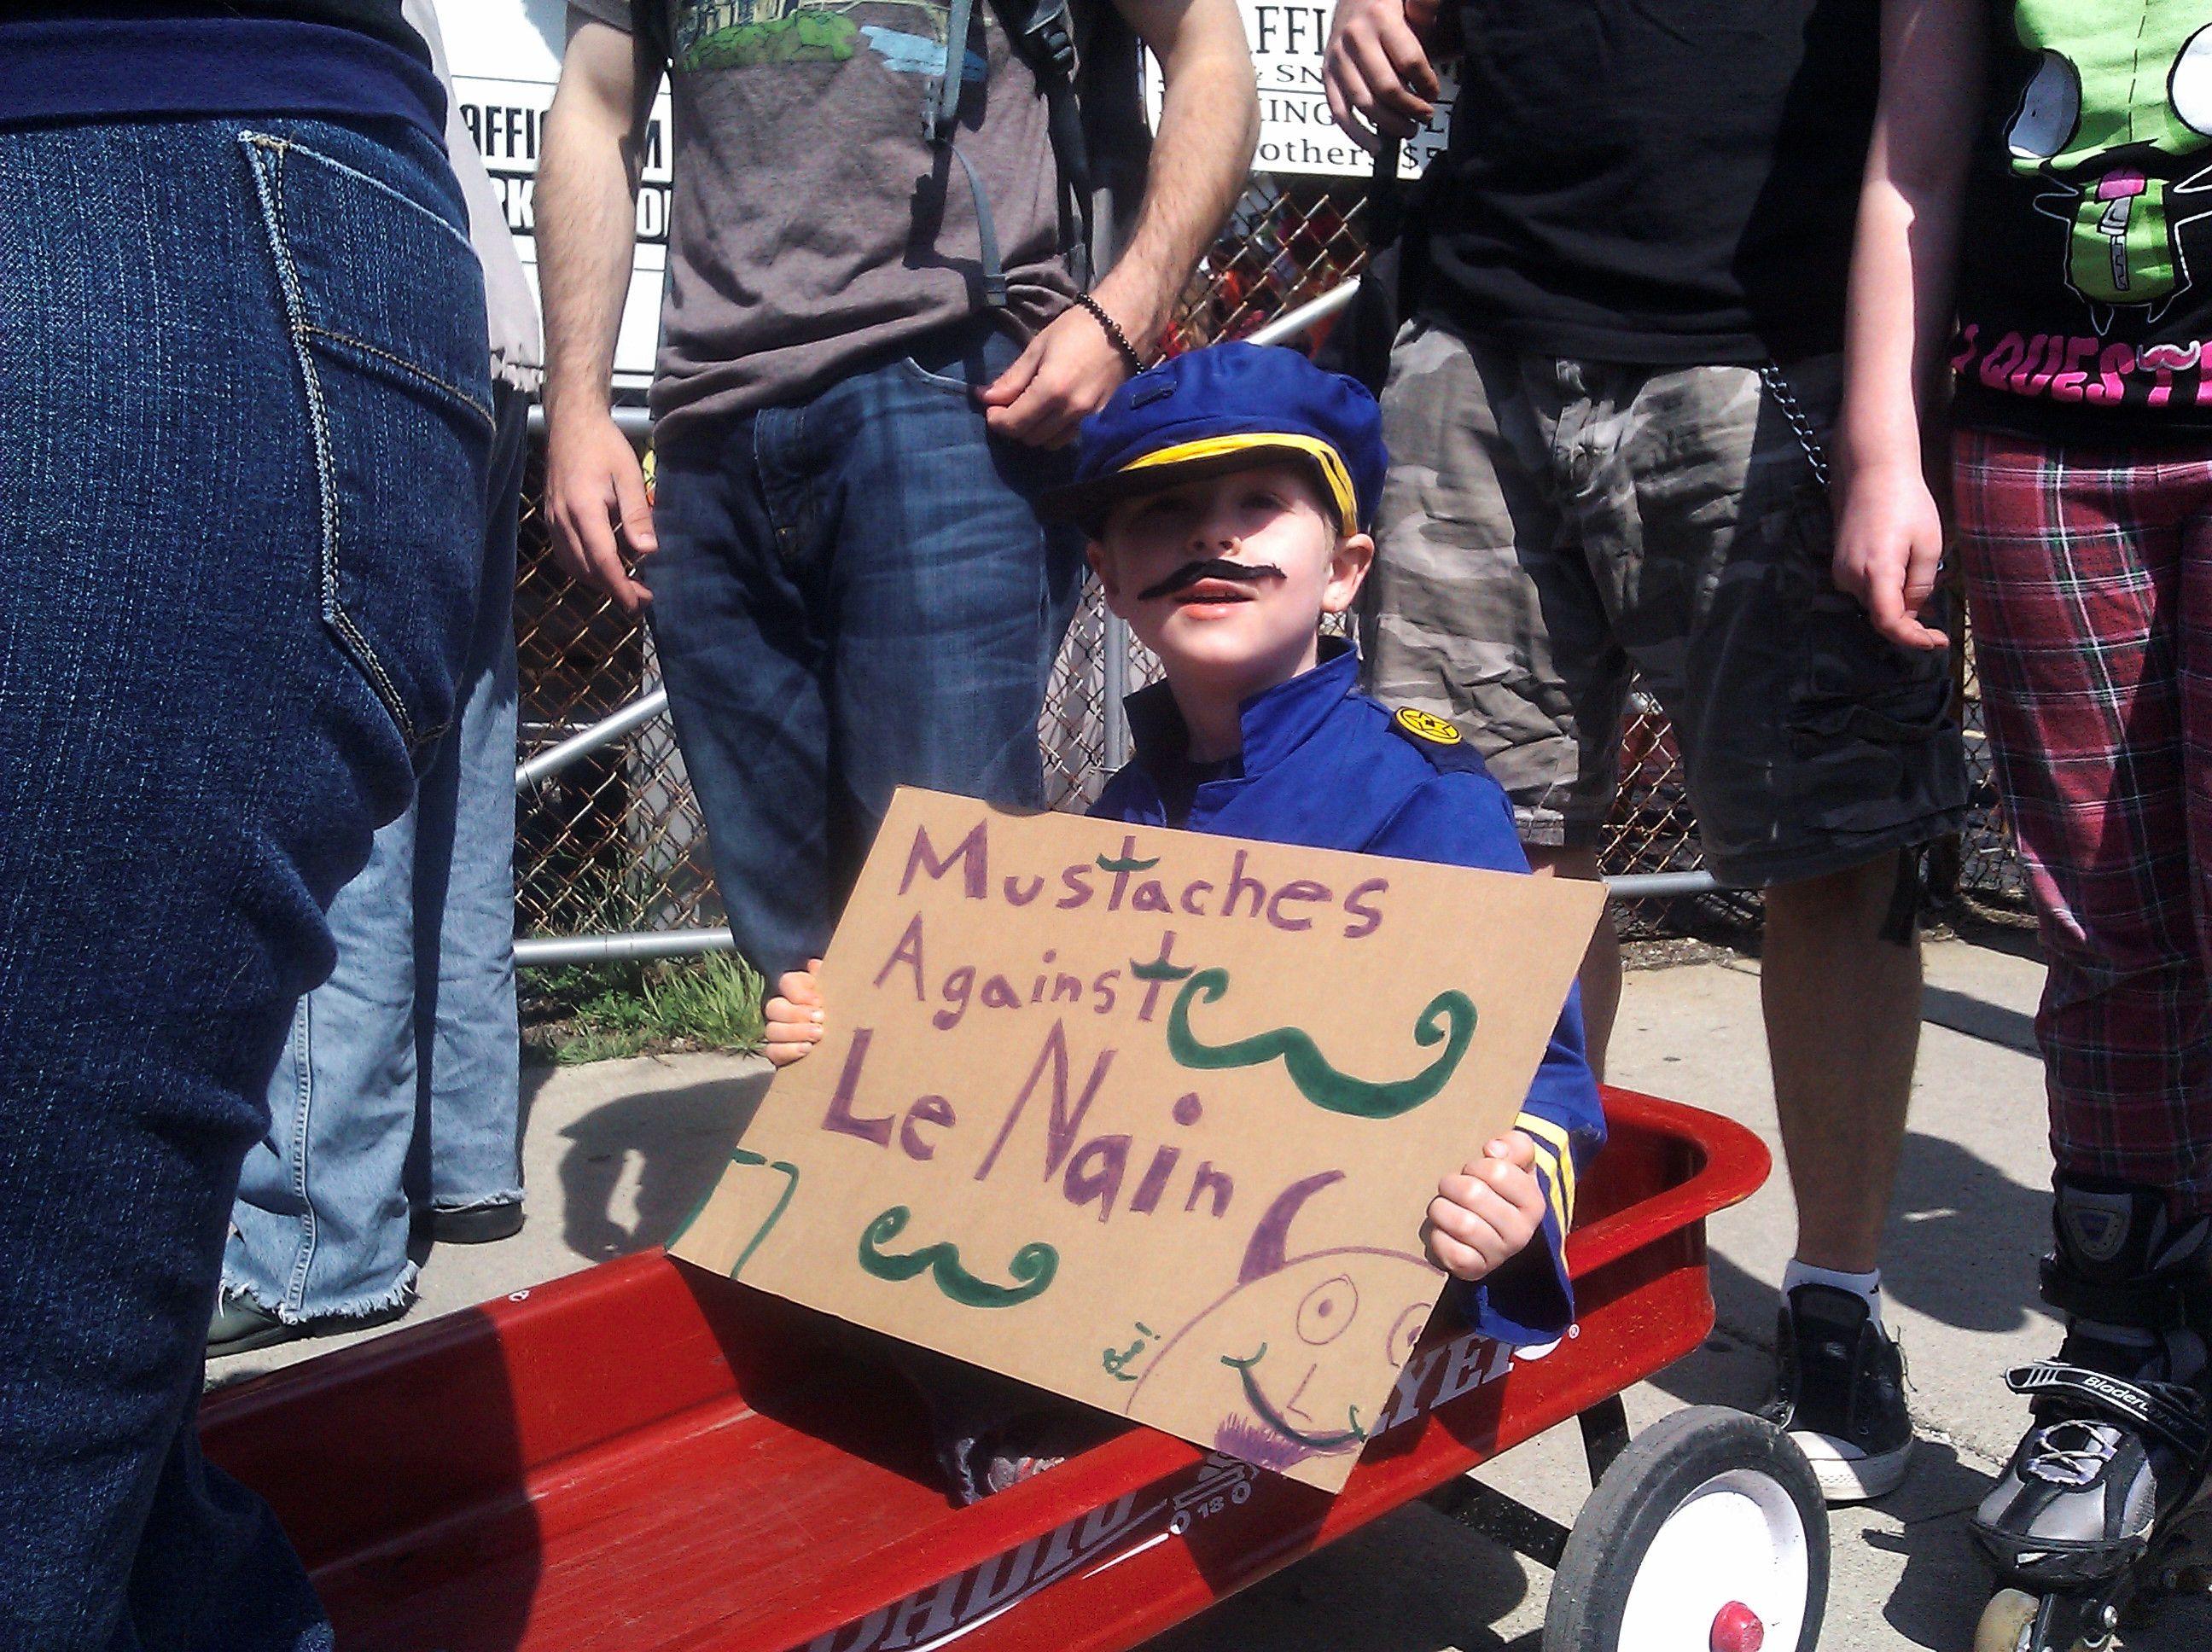 Marche du Nain Rouge 2012 Mustaches against le Nain